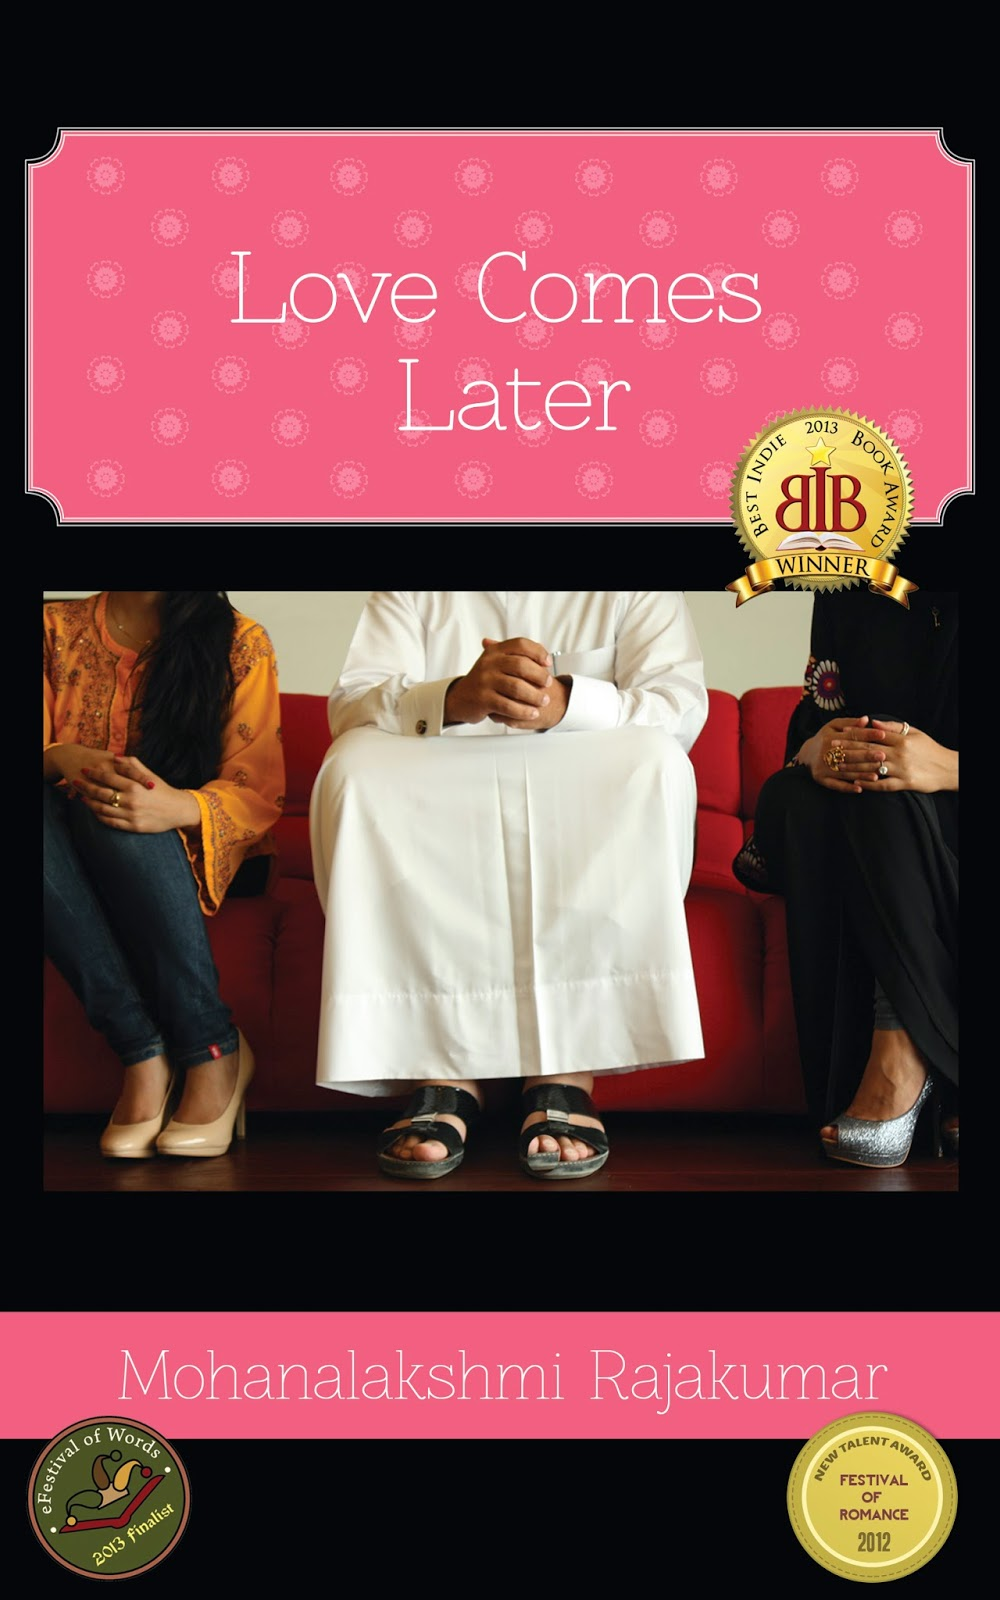 https://www.goodreads.com/book/show/15744536-love-comes-later